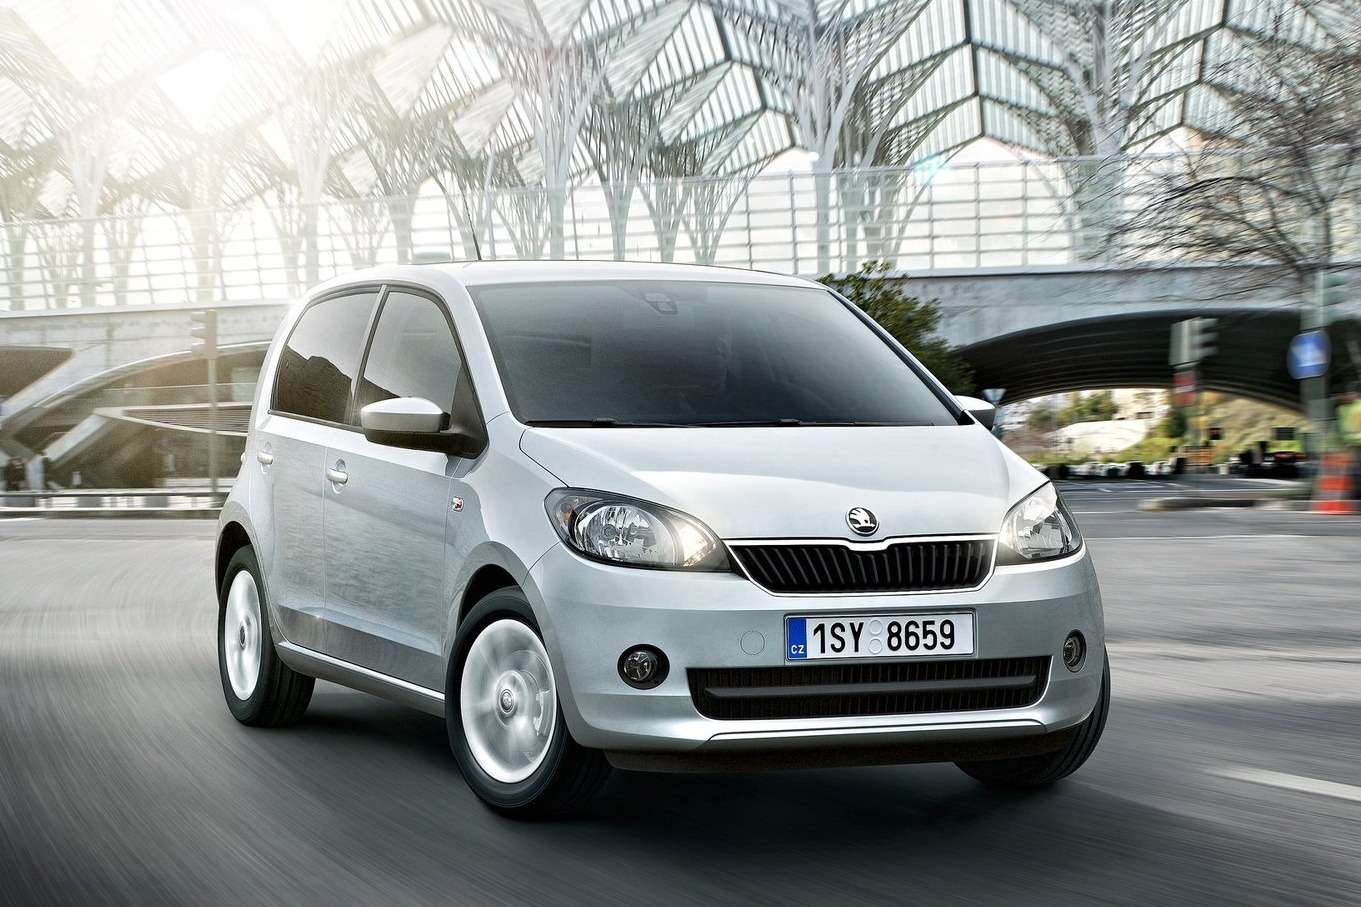 Skoda-Citigo_5-door_2013_1600x1200_wallpaper_02